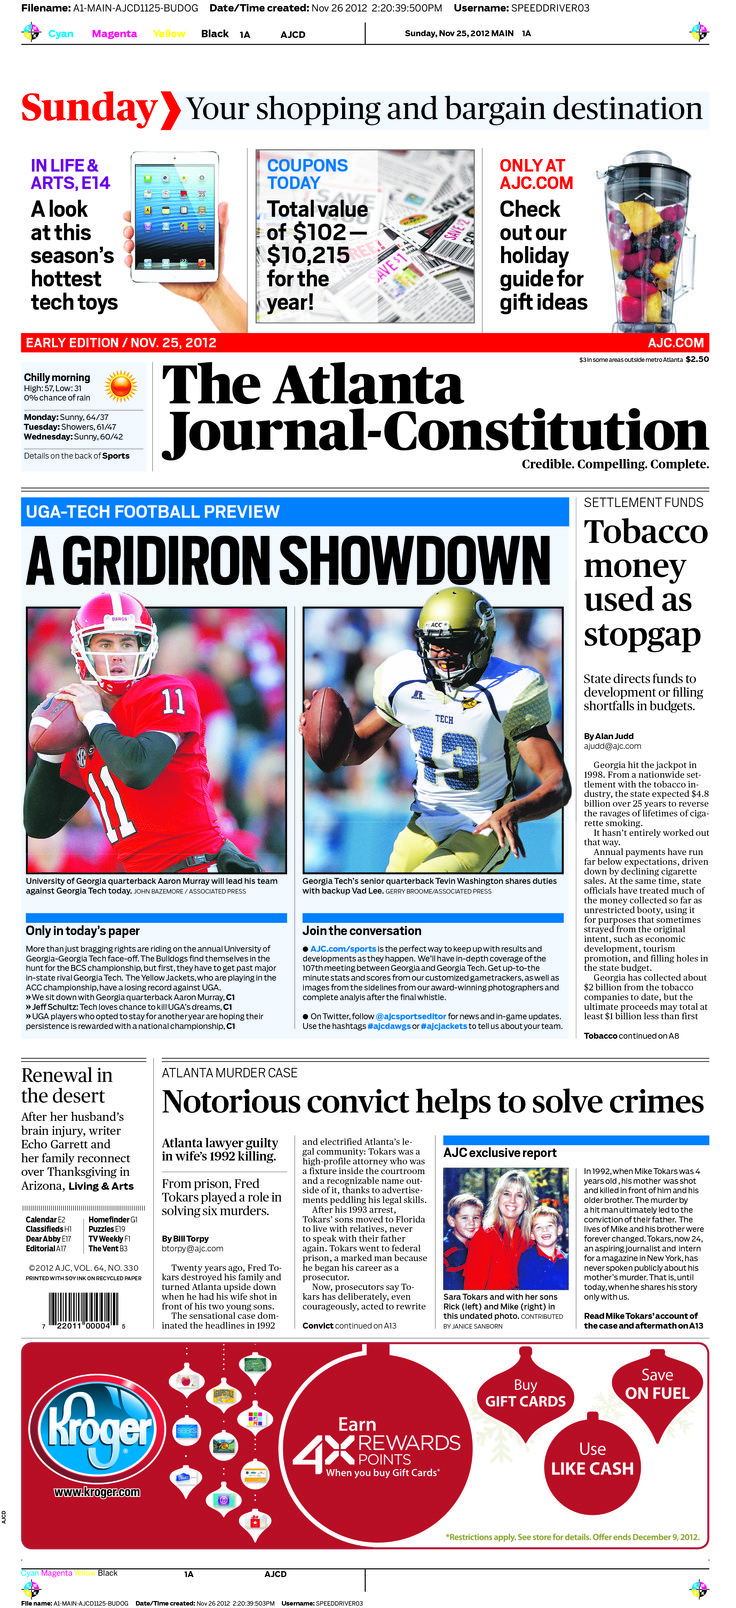 #AJC #Bulldog edition previewing the #UGa vs. #GTech game. #Newspaper #Design #Sports